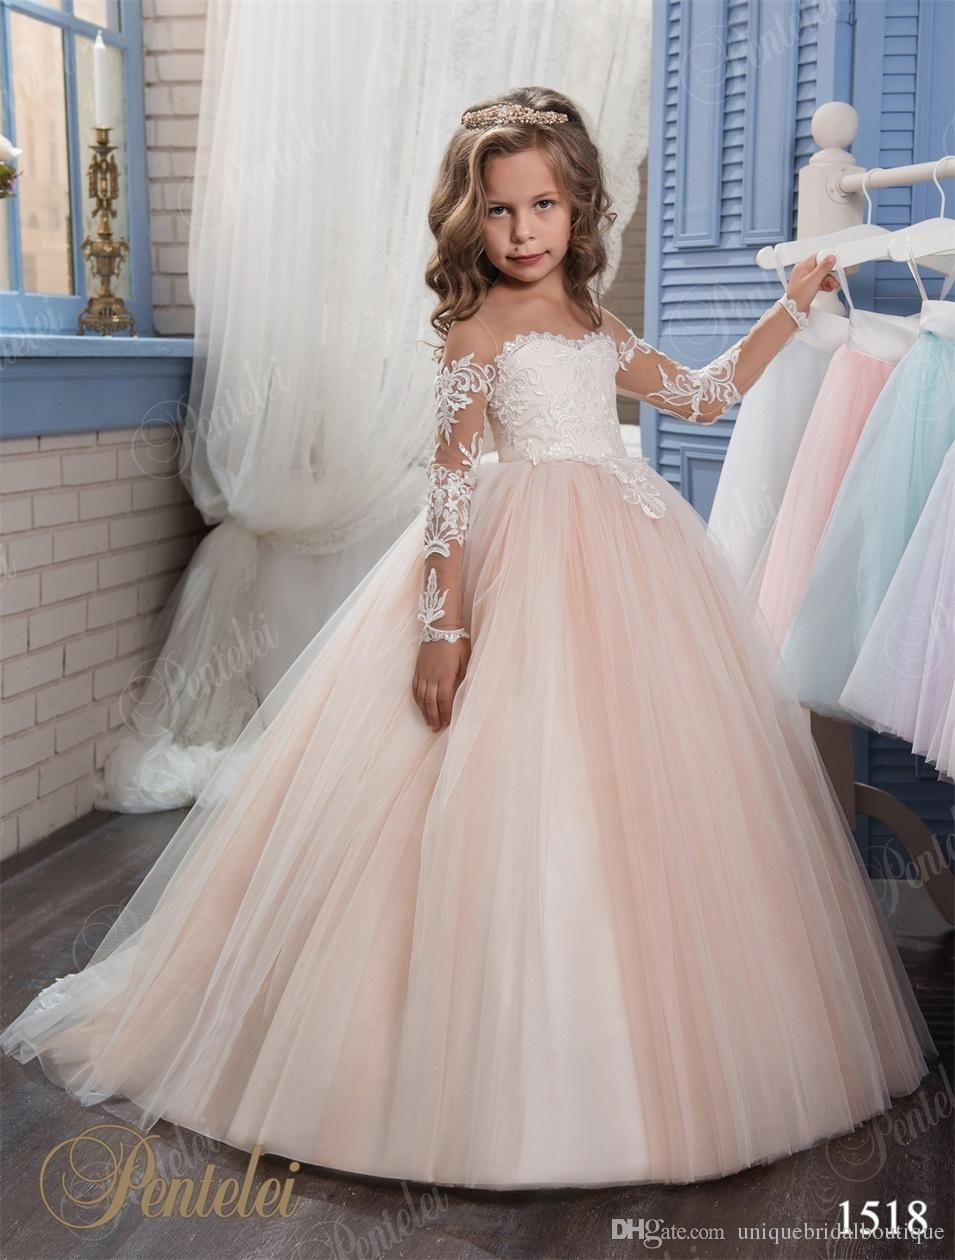 Kids wedding dresses 2017 pentelei with illusion long for Dresses for wedding for kids